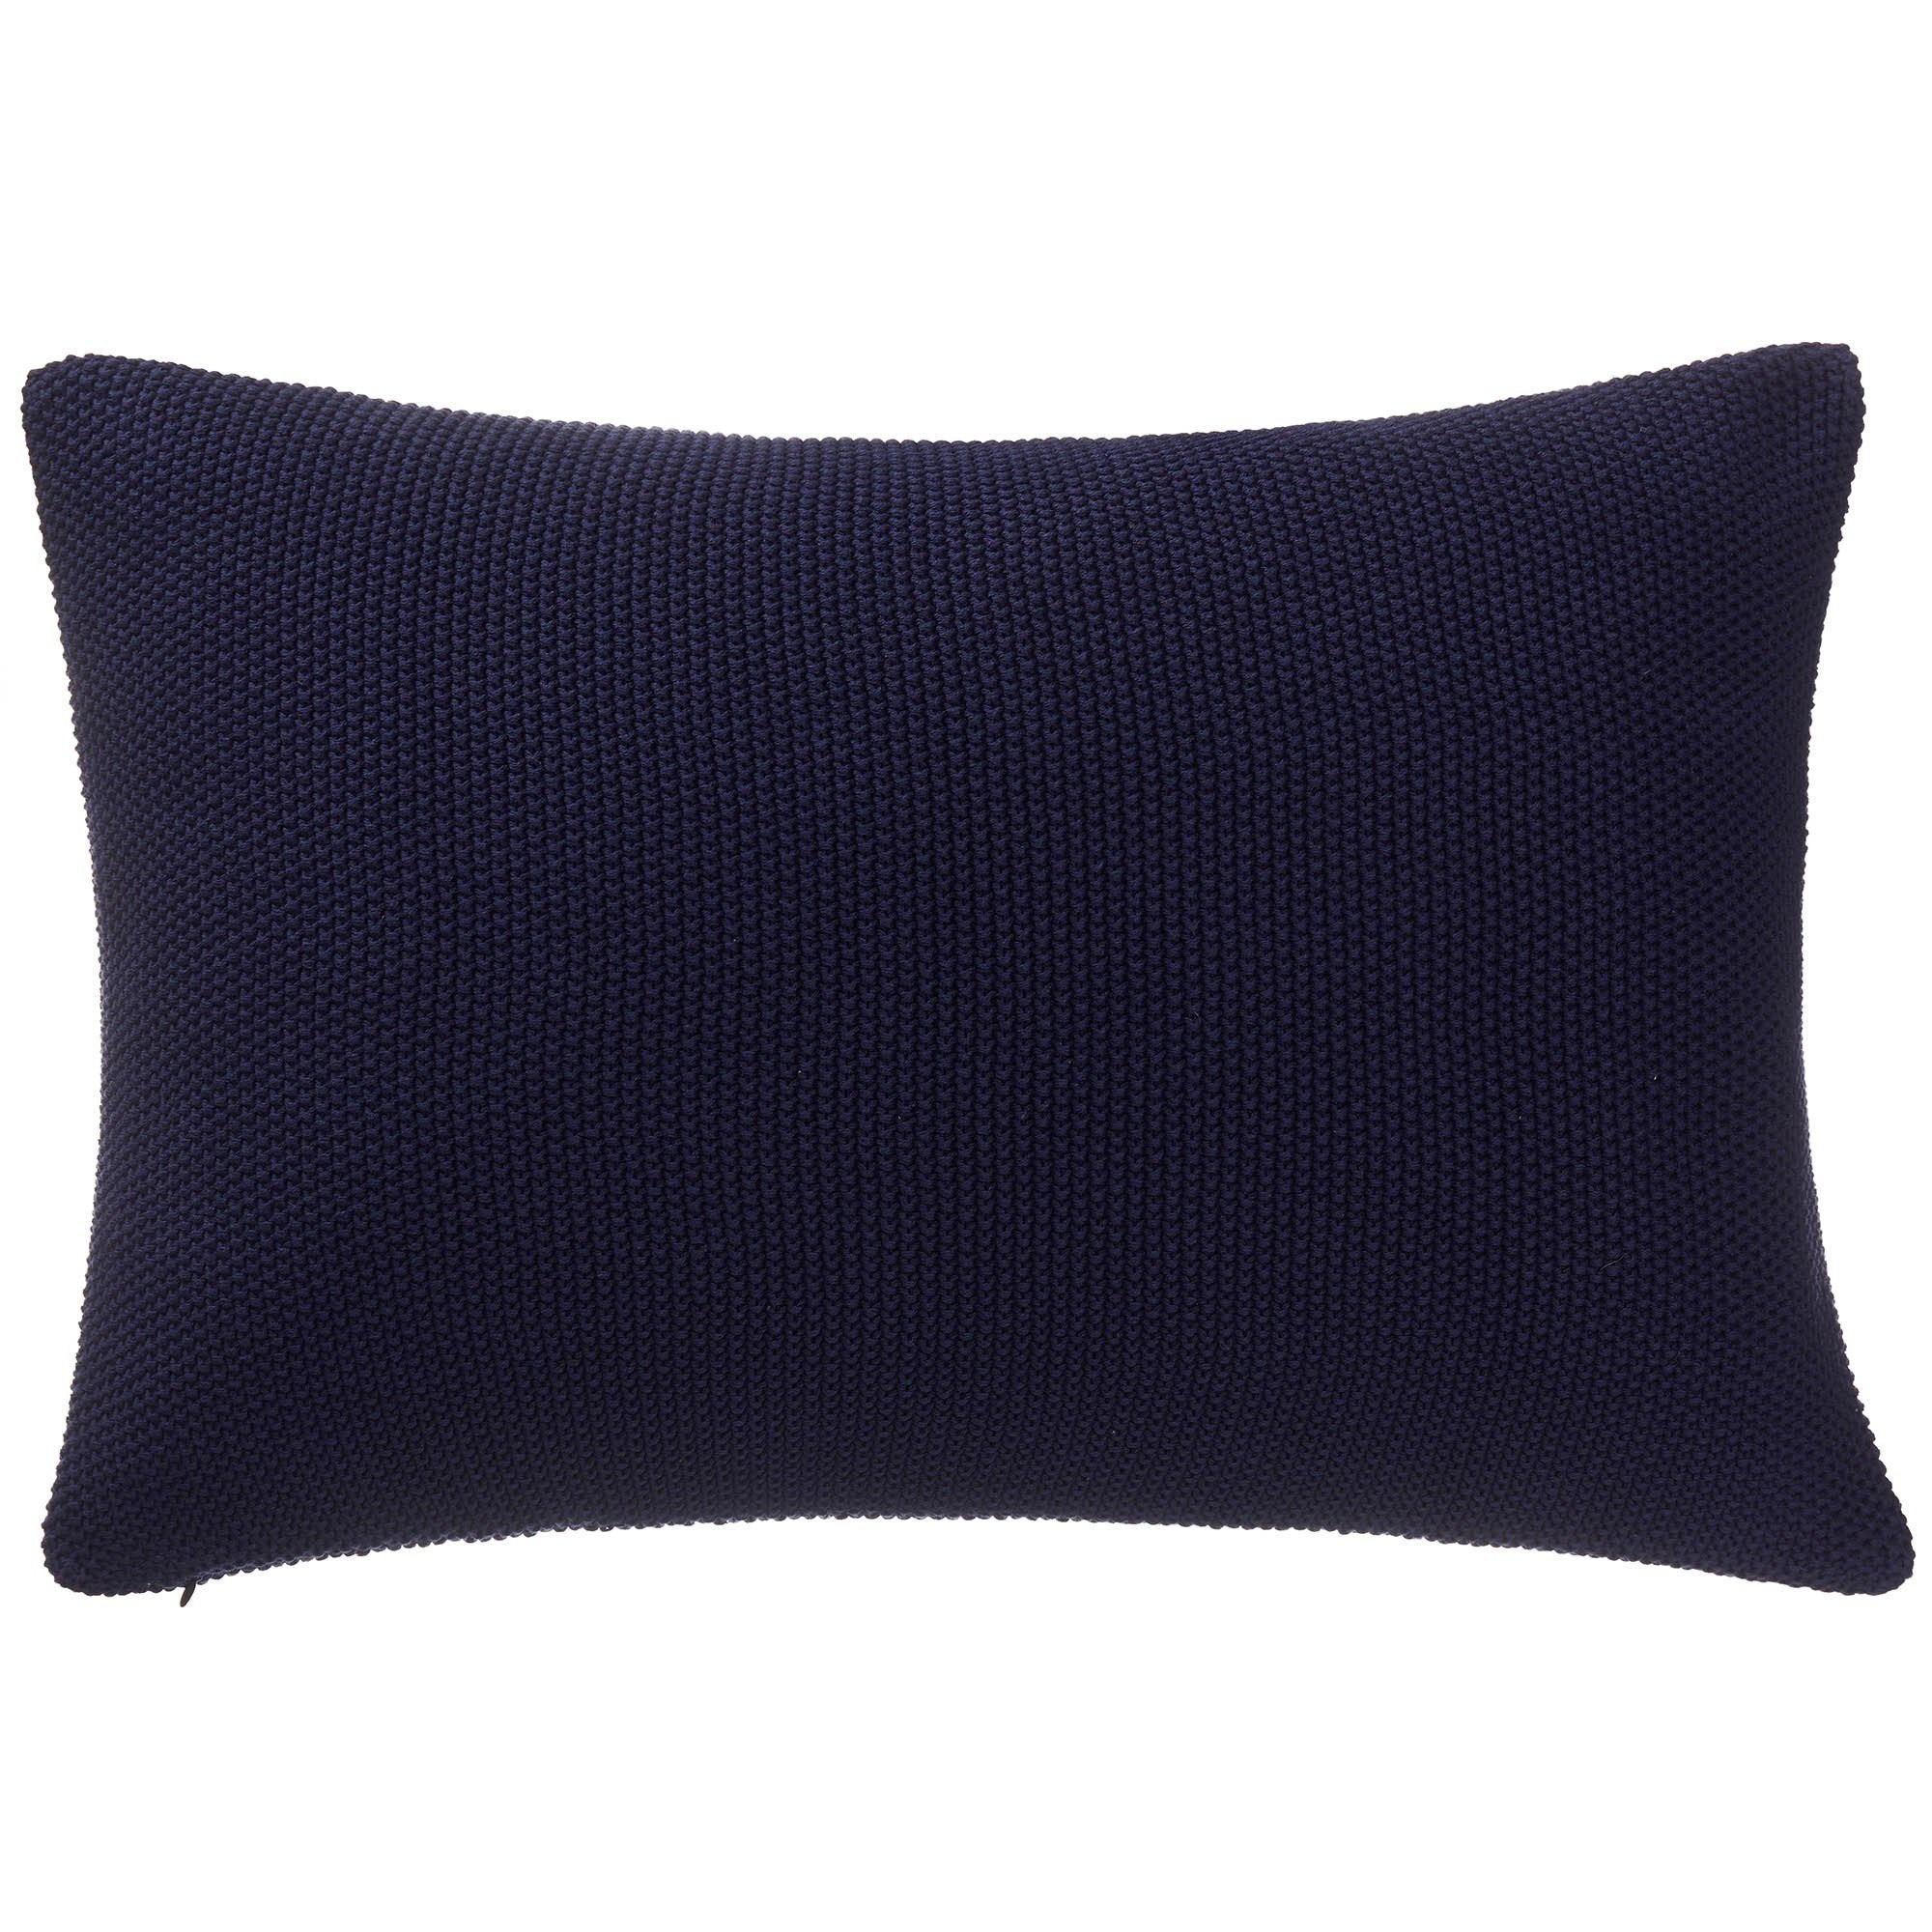 Antua Cushion [Dark blue]